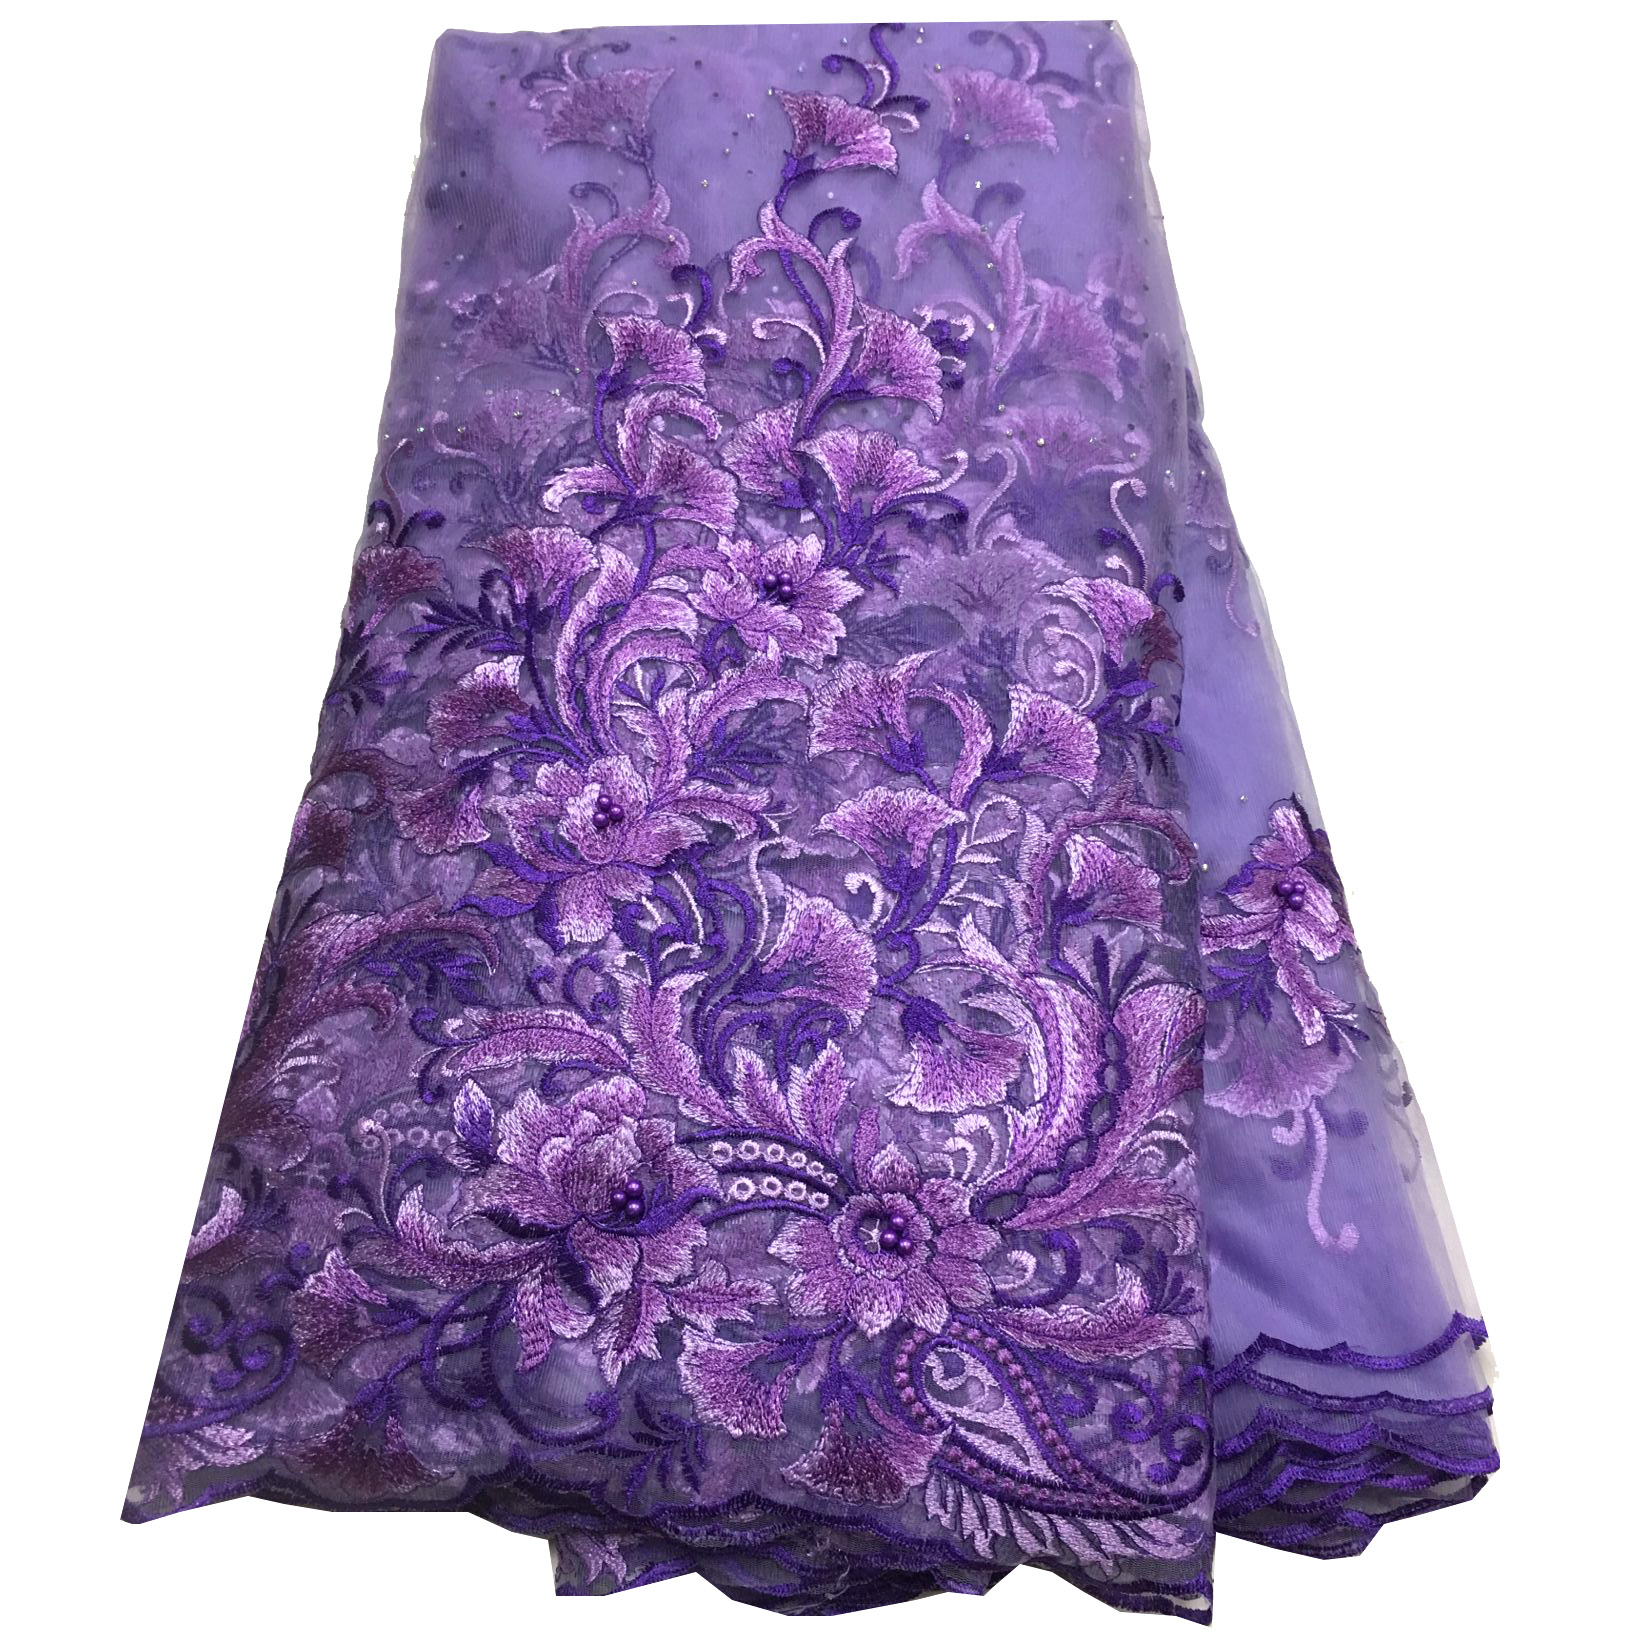 2019 Latest Purple French Nigerian Lace Fabrics High Quality African Lace Fabric Wedding Embroidered Tulle Organza